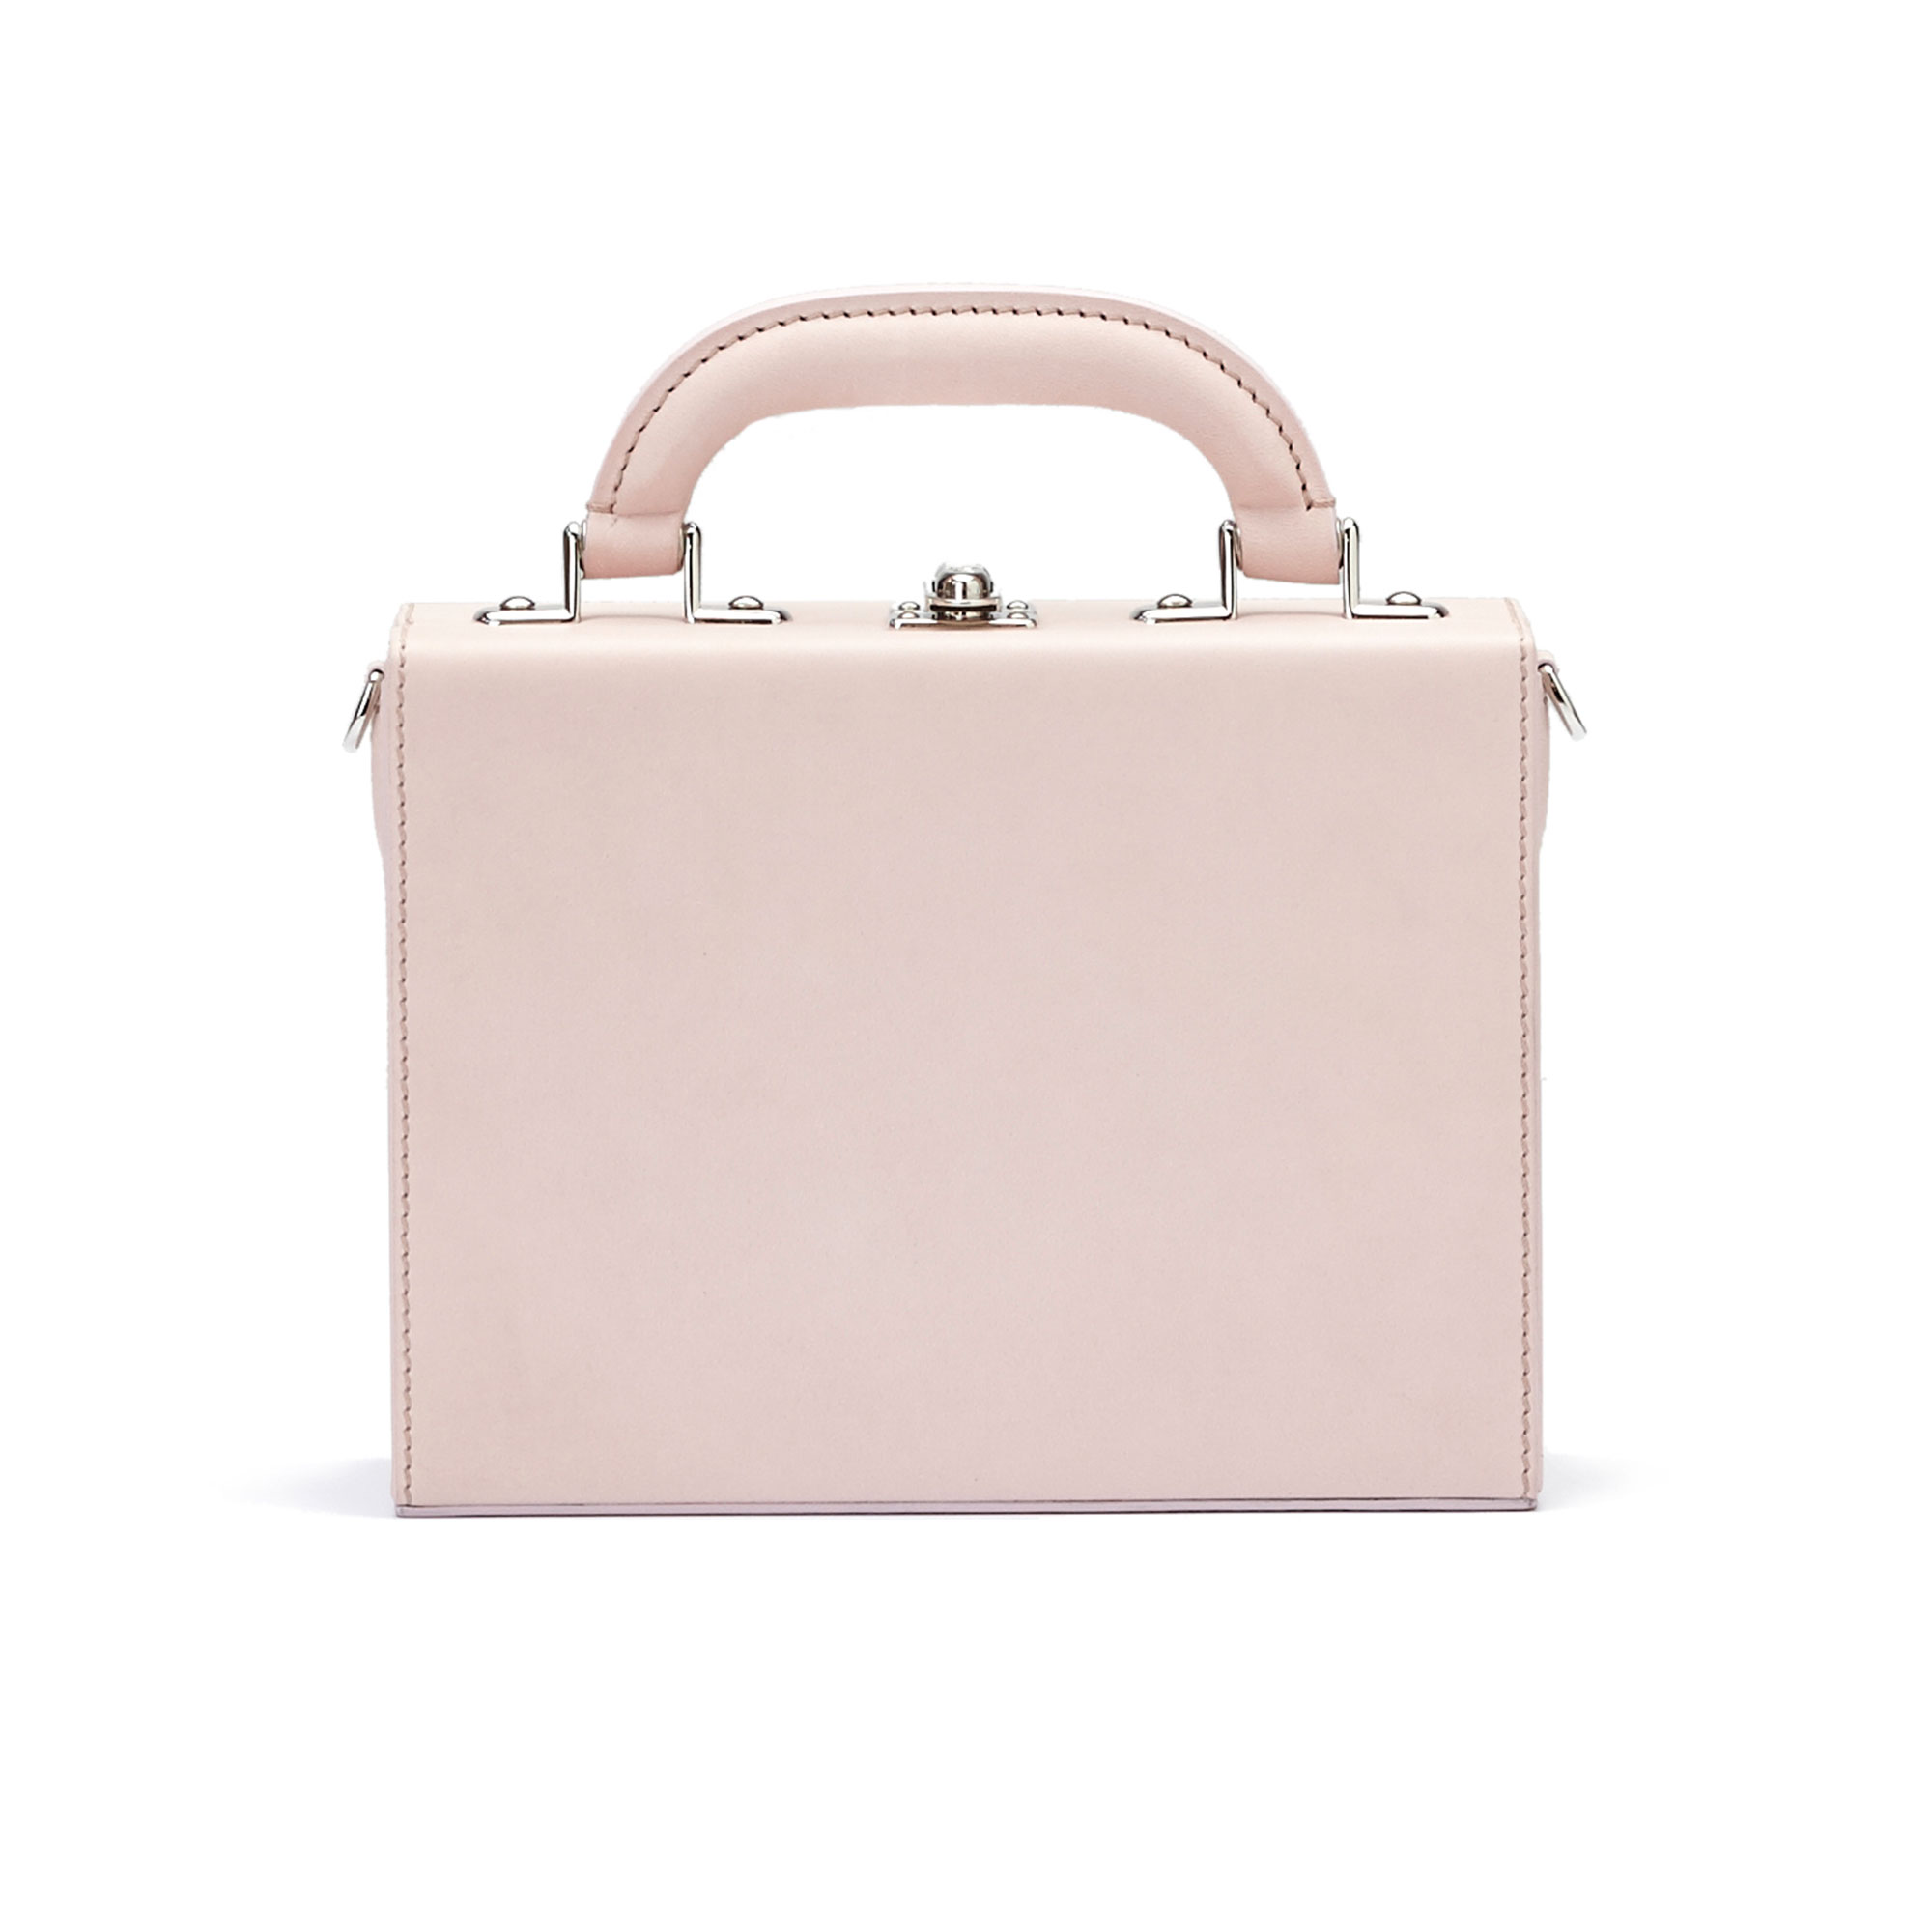 The pink french calf Mini Squared Bertoncina bag by Bertoni 1949 01